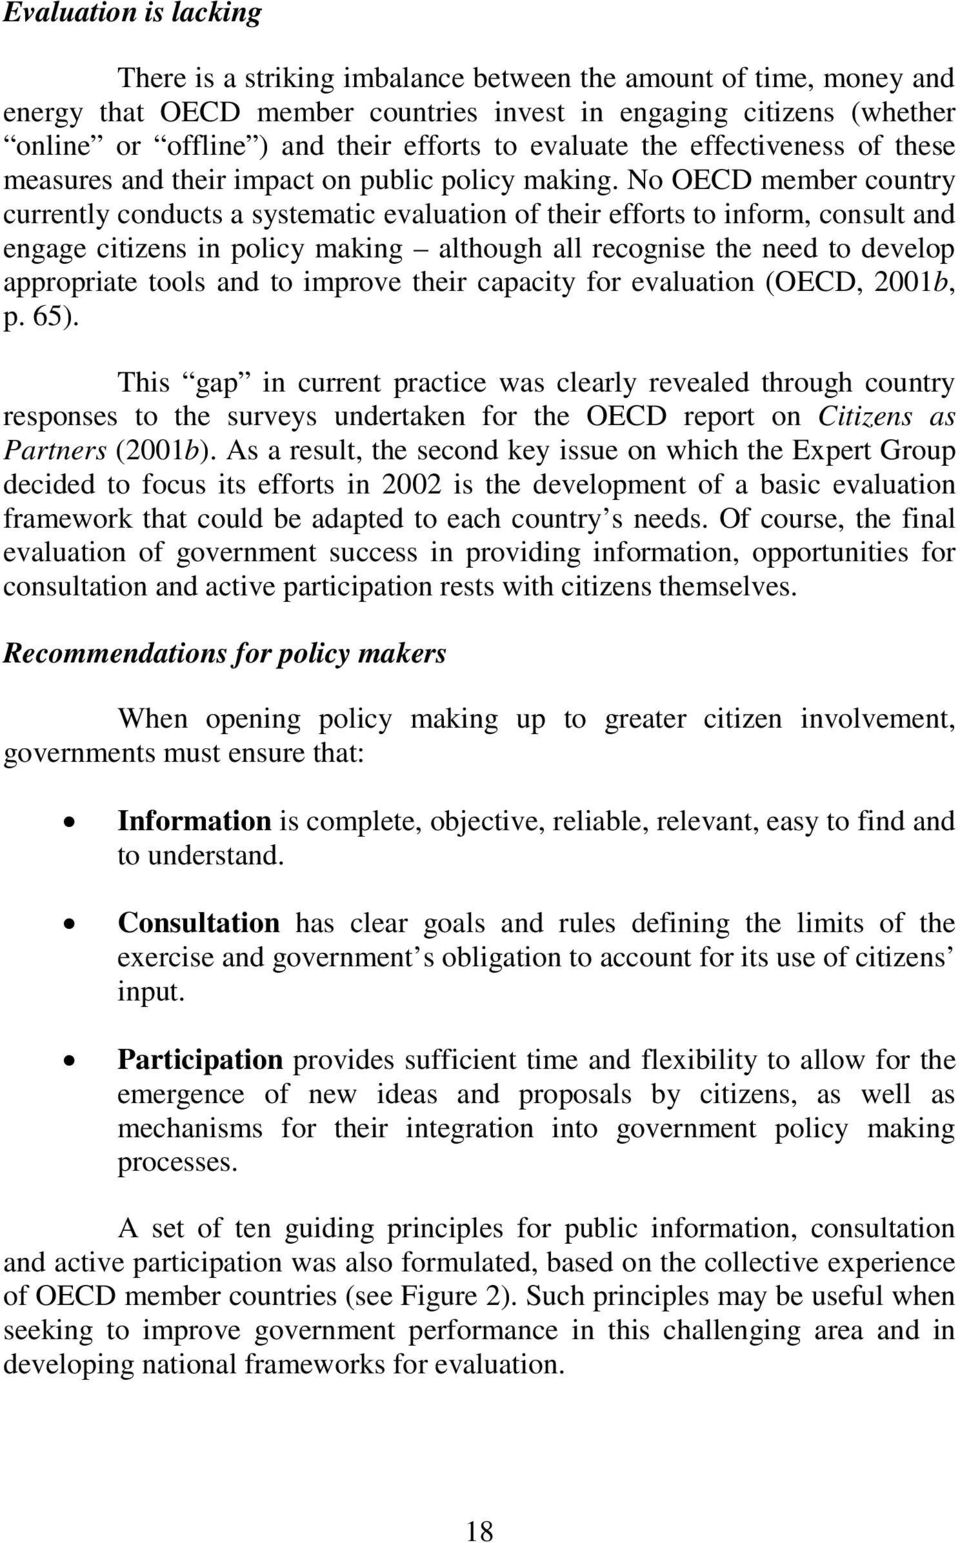 No OECD member country currently conducts a systematic evaluation of their efforts to inform, consult and engage citizens in policy making although all recognise the need to develop appropriate tools